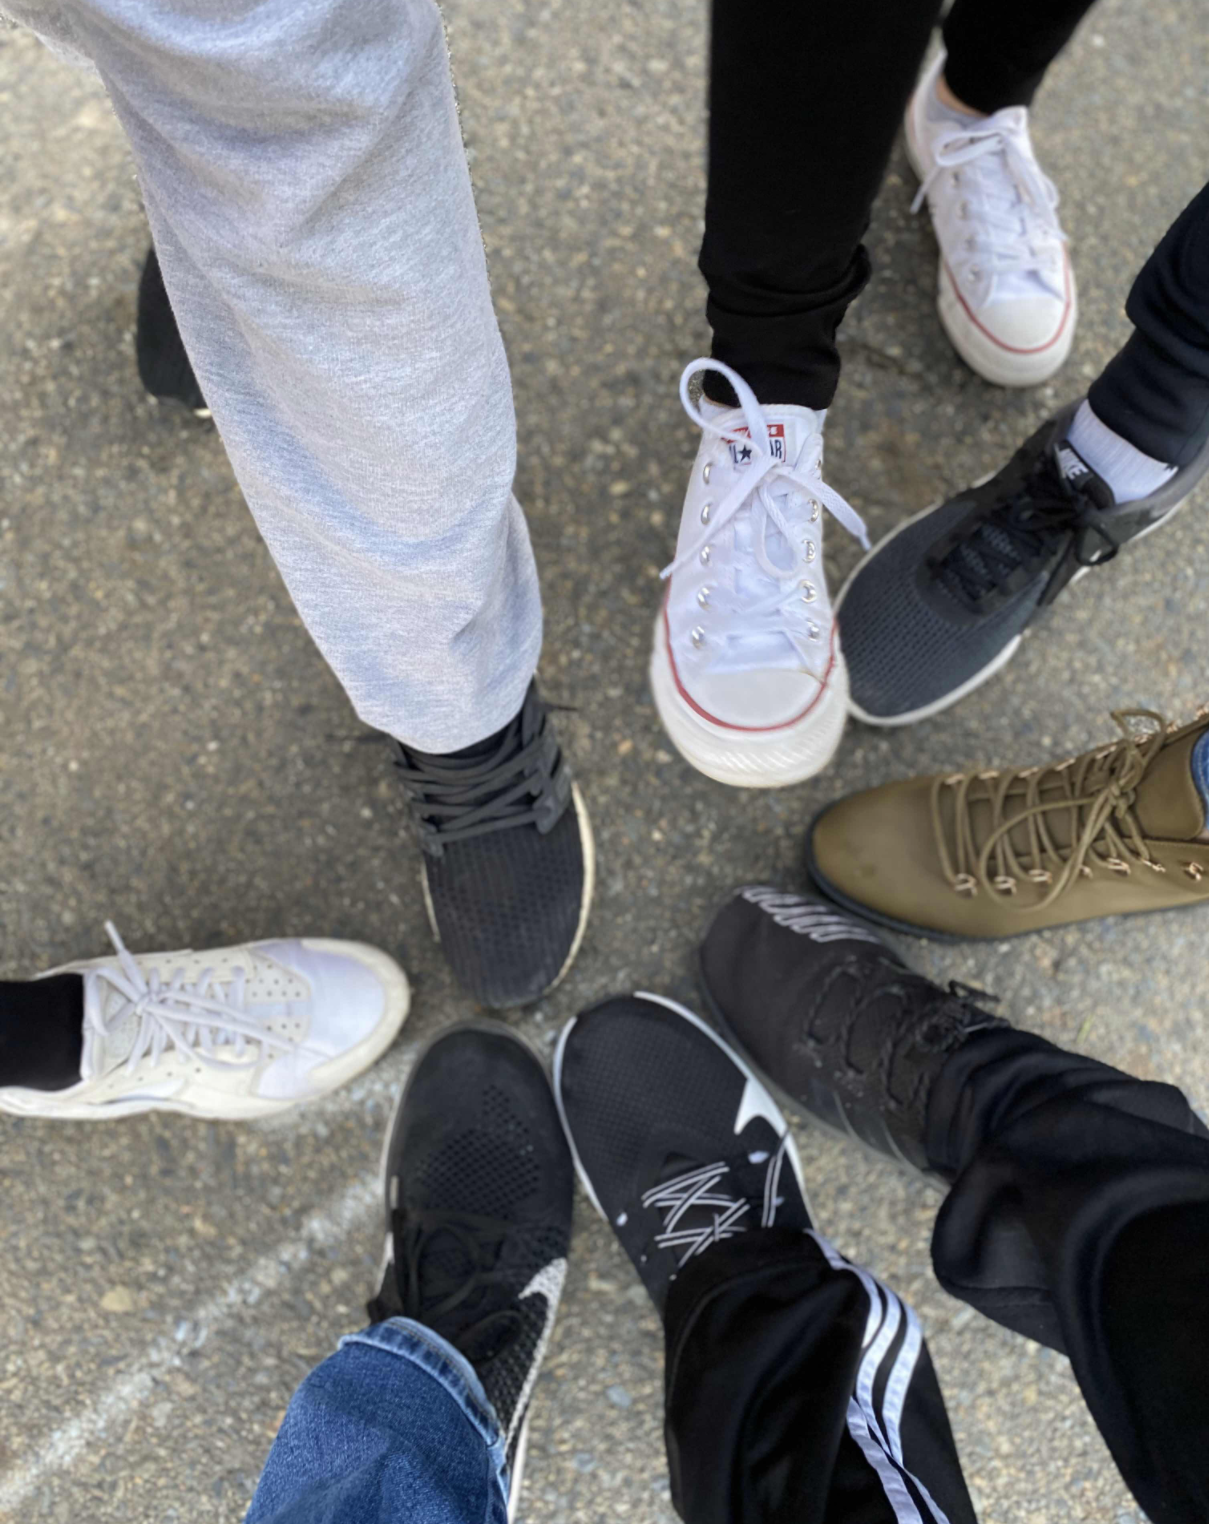 The author and their friends' sneakers in a circle together. Photo taken by the author.